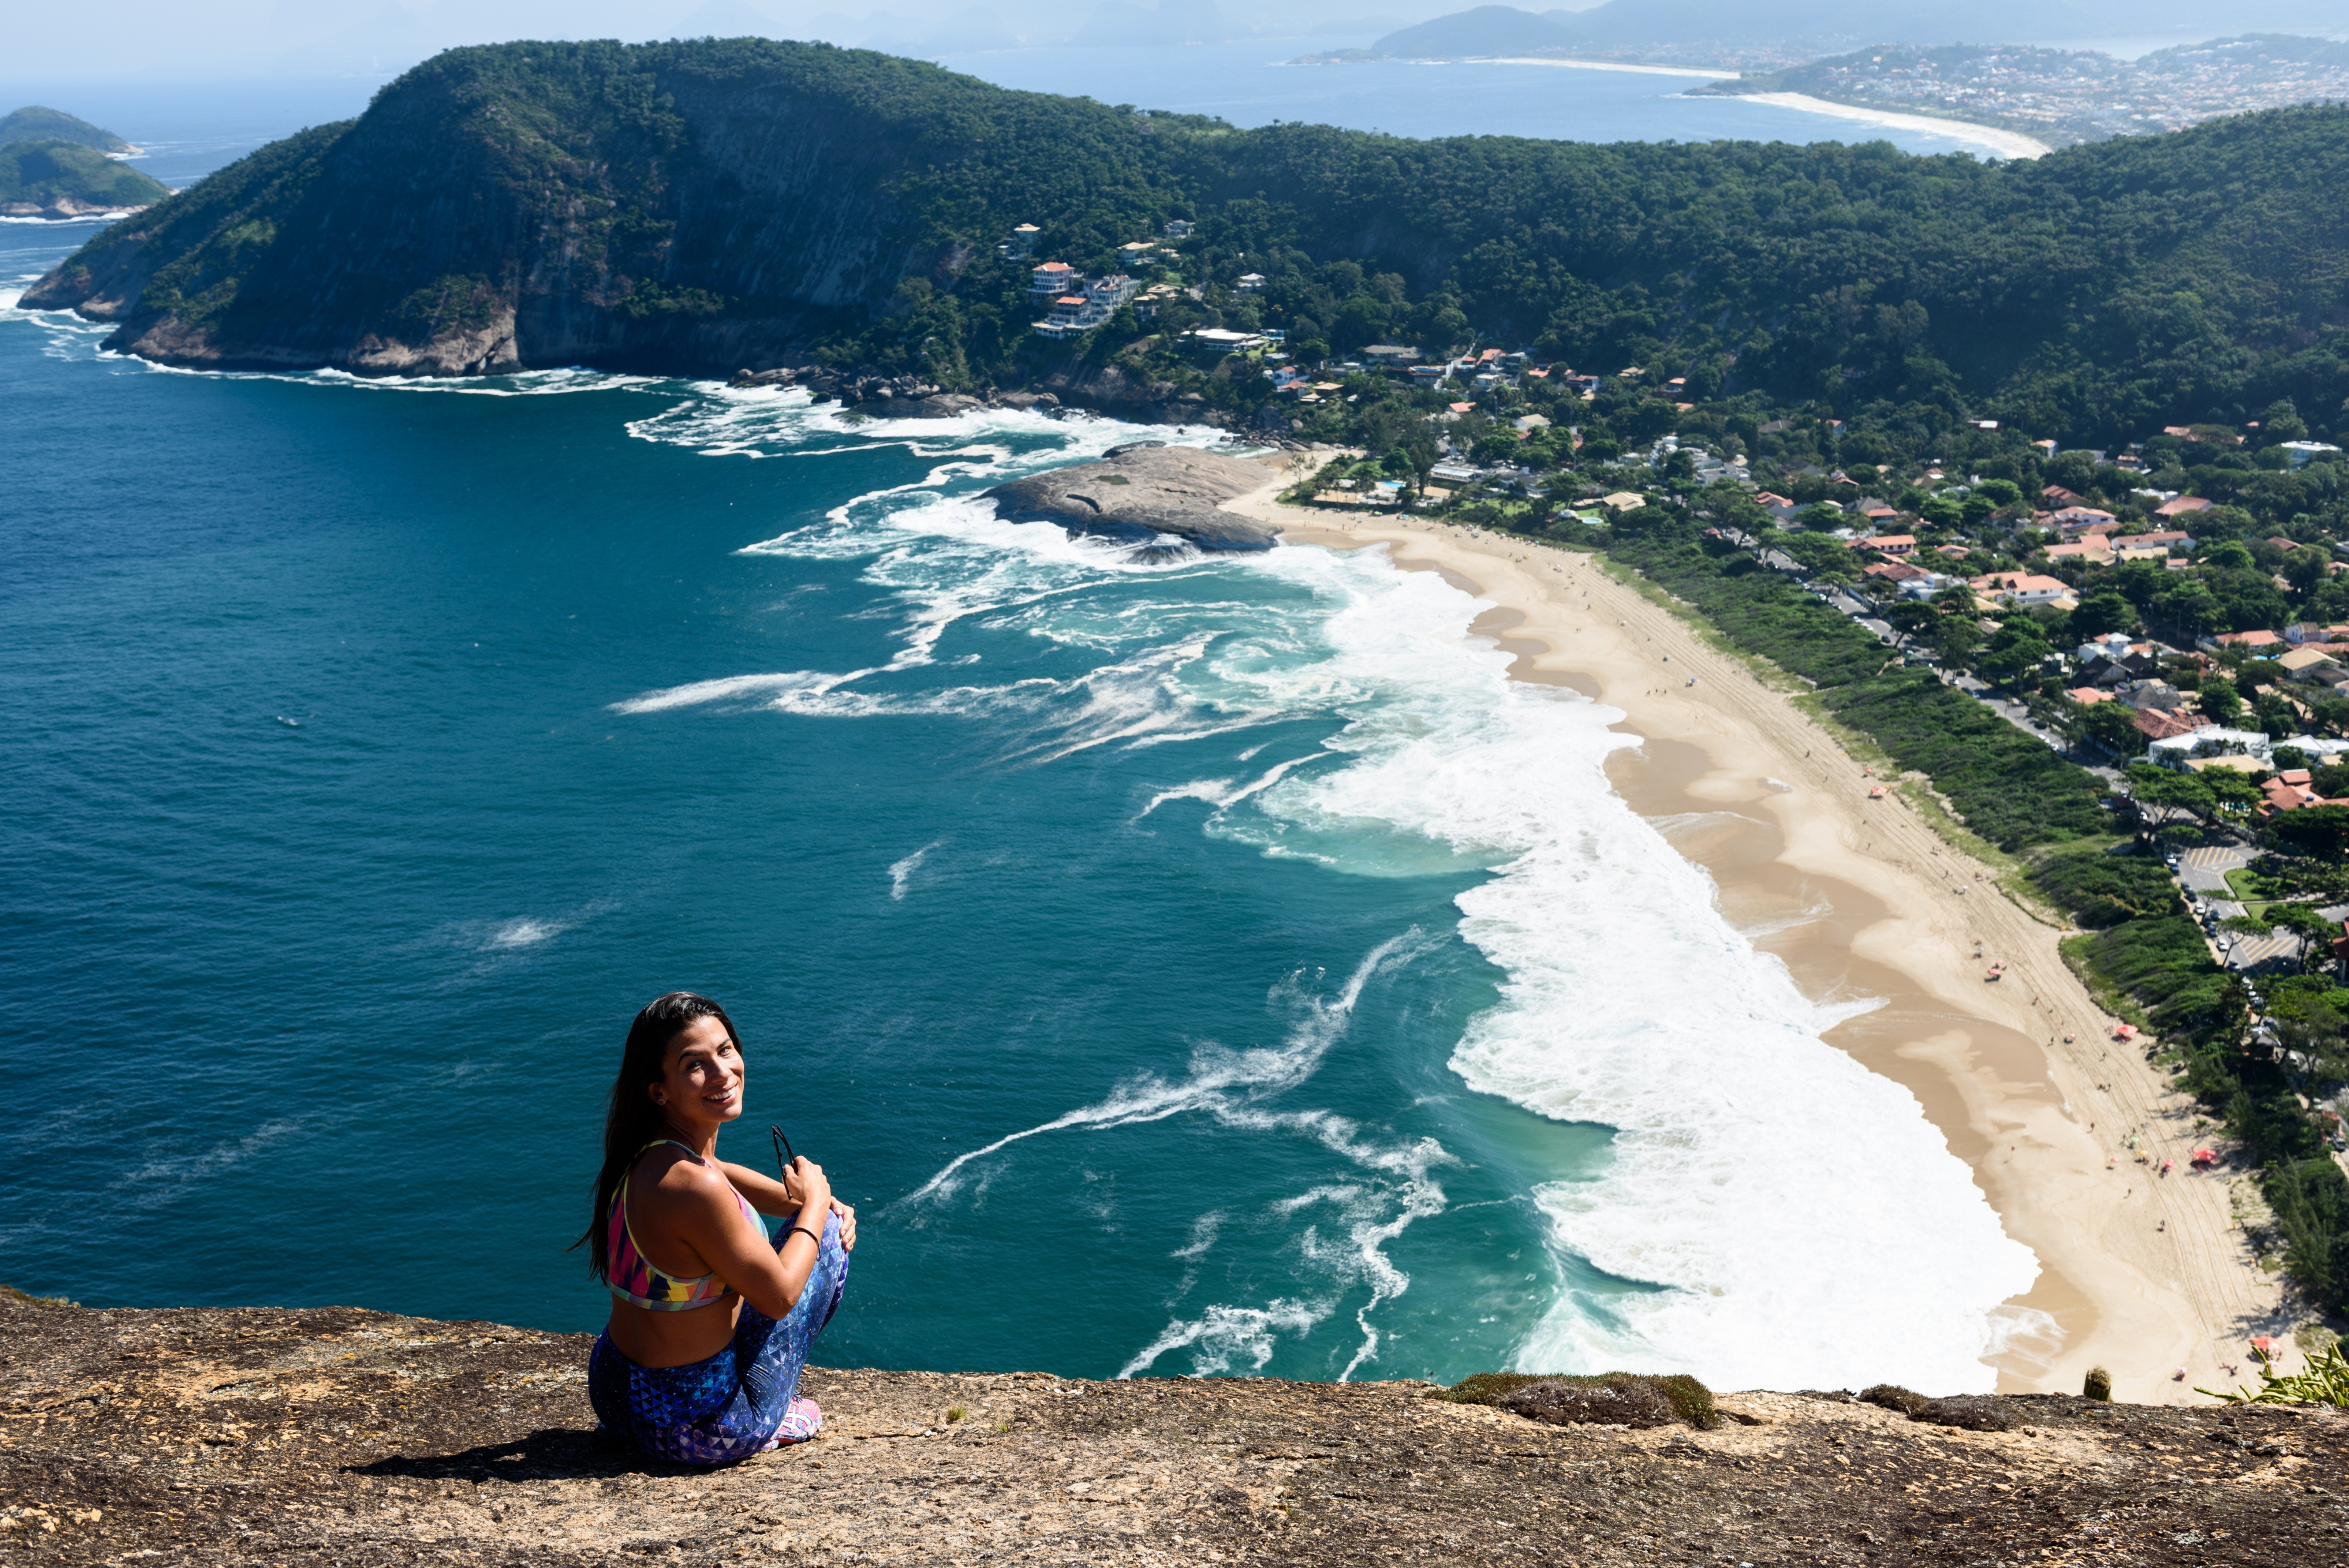 Airbnb Brings Trips to Rio